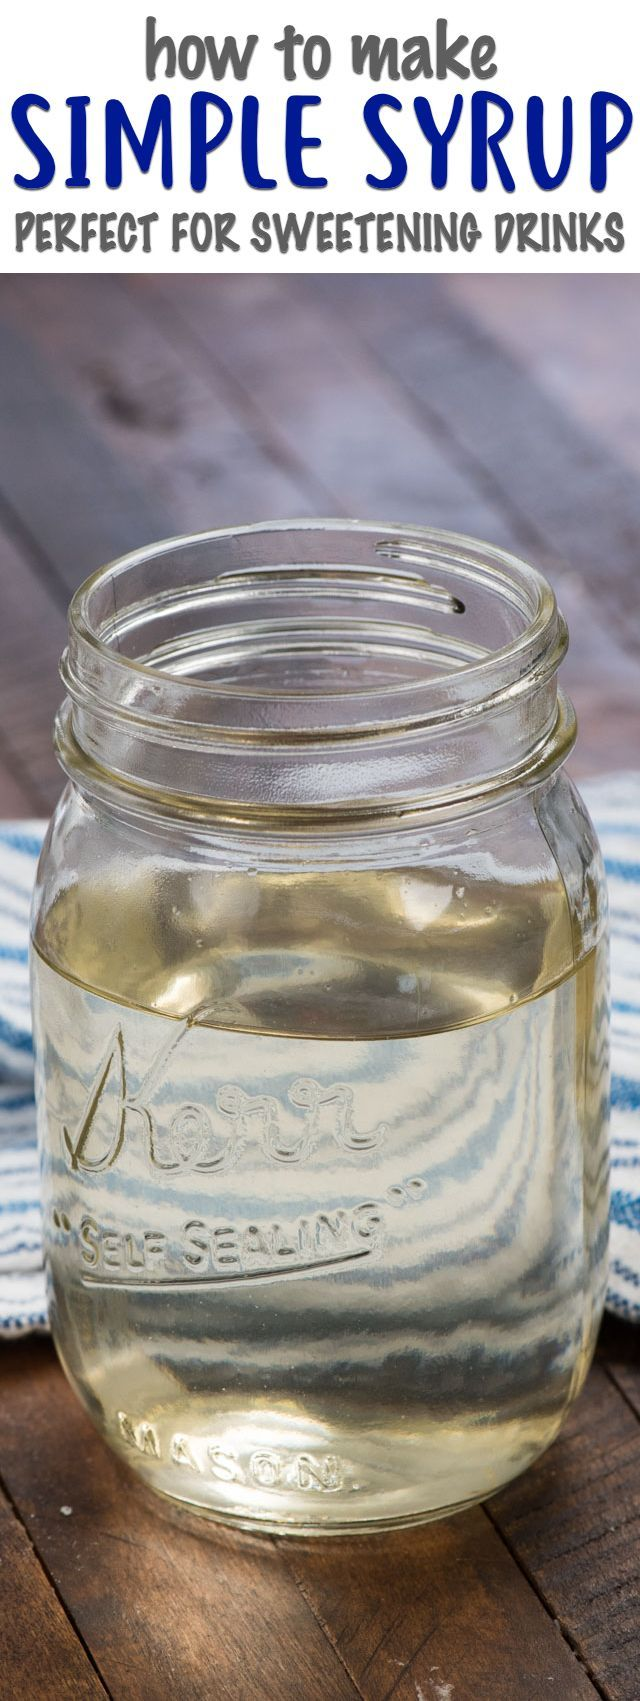 Have you ever wanted to sweeten lemonade or a cocktail recipe? Simple syrup is t…